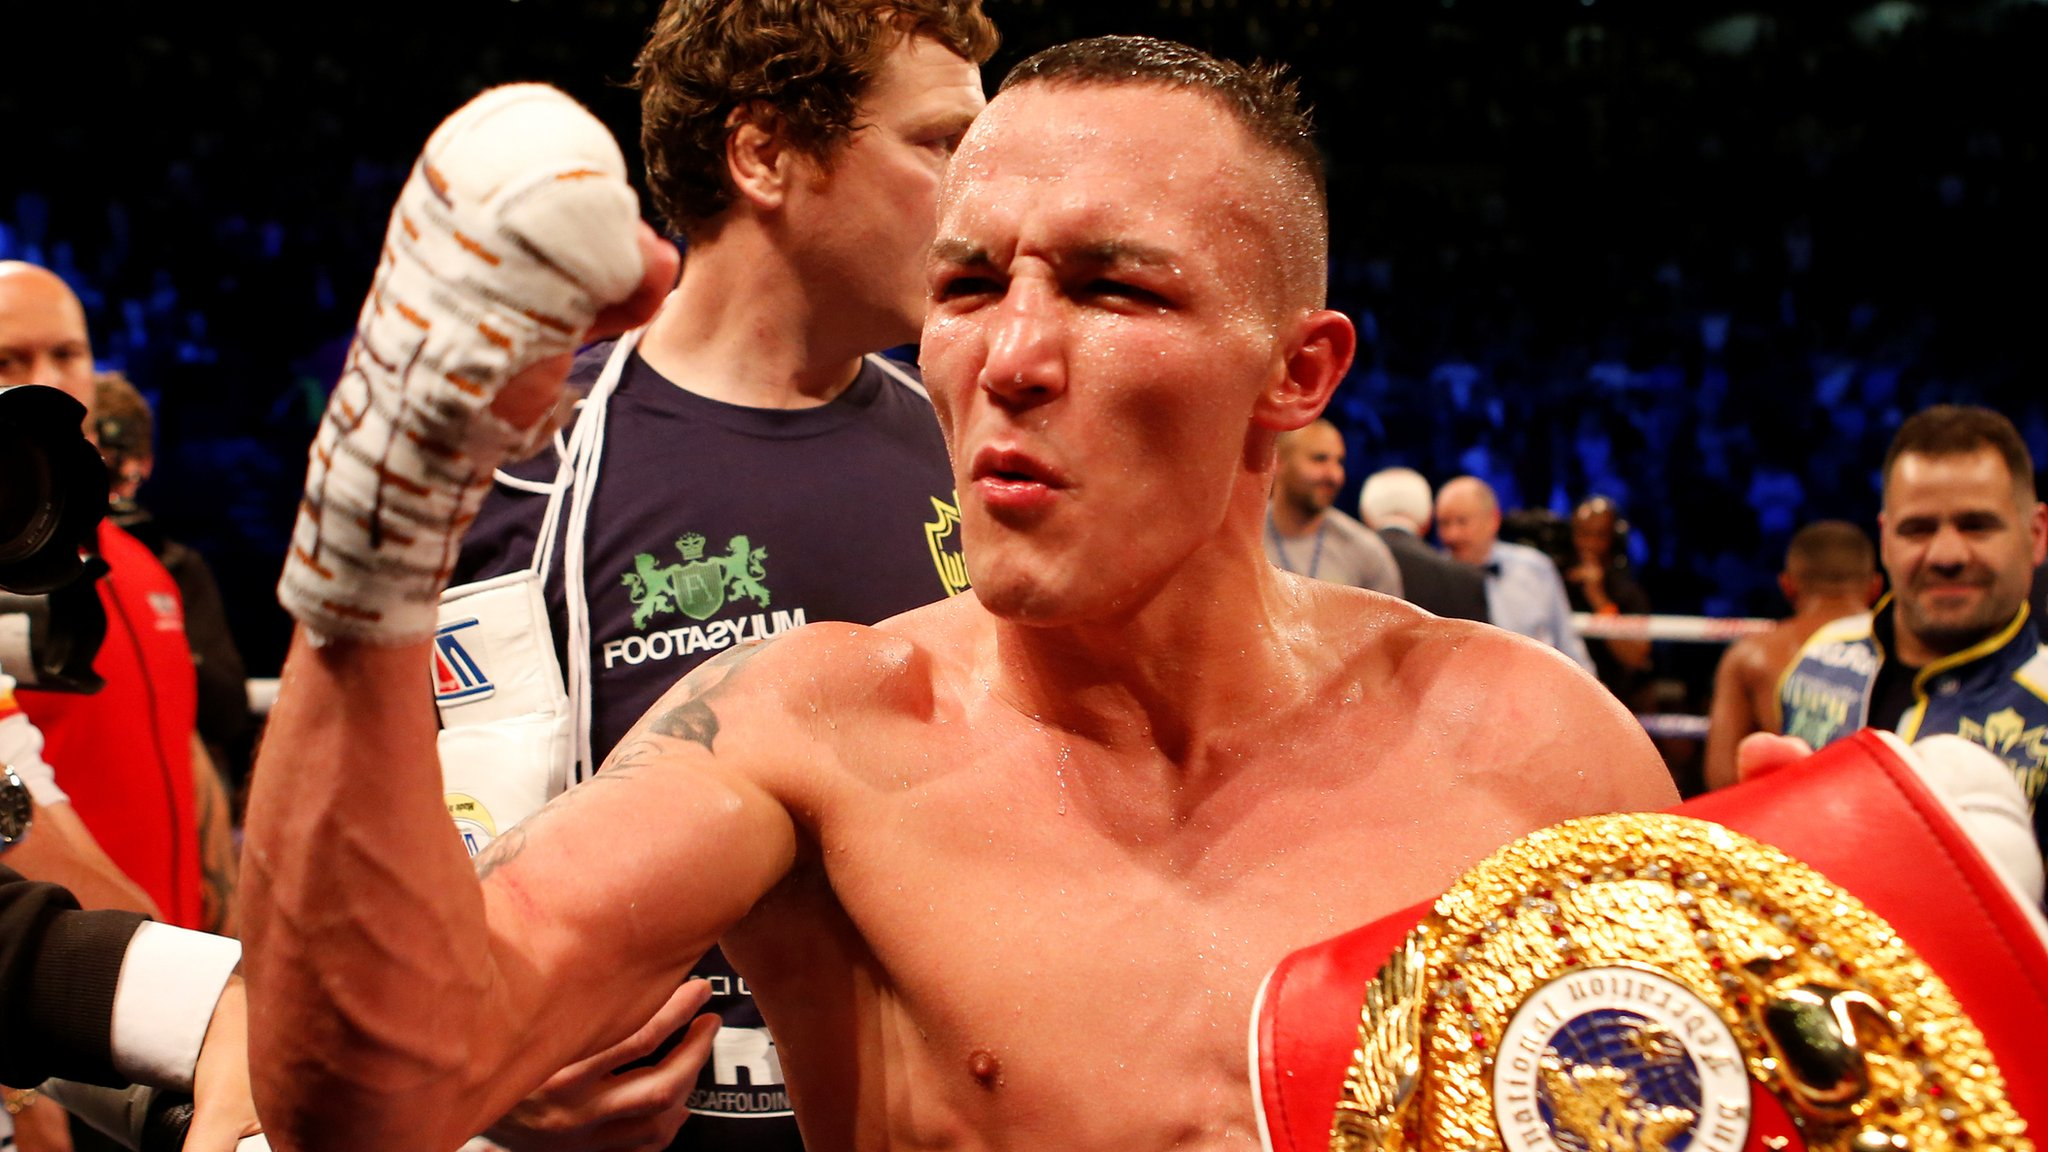 Warrington beats Galahad to retain featherweight title